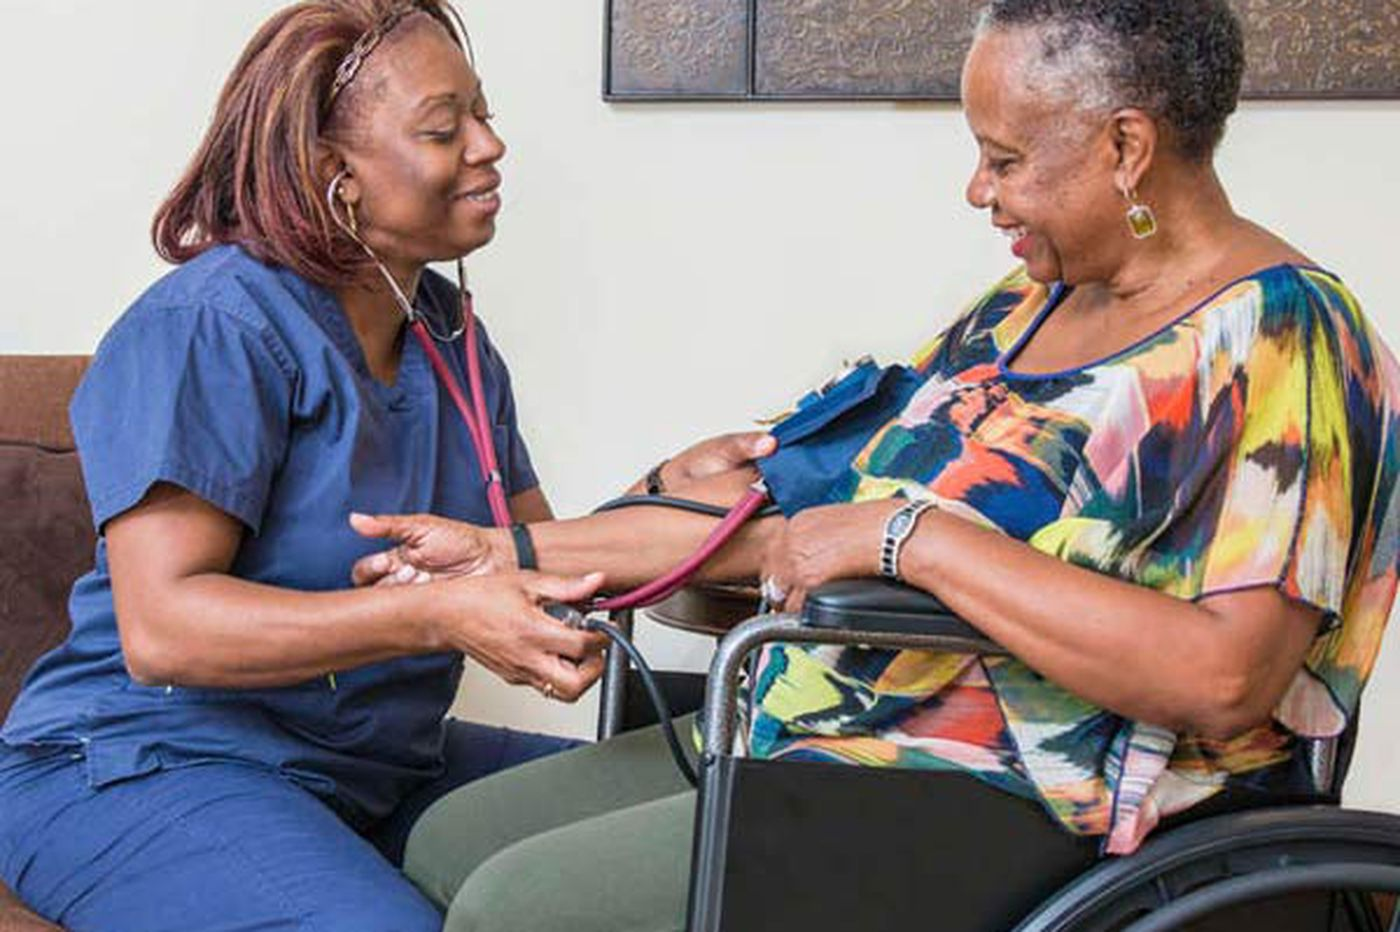 Medicare star-system comes to home health